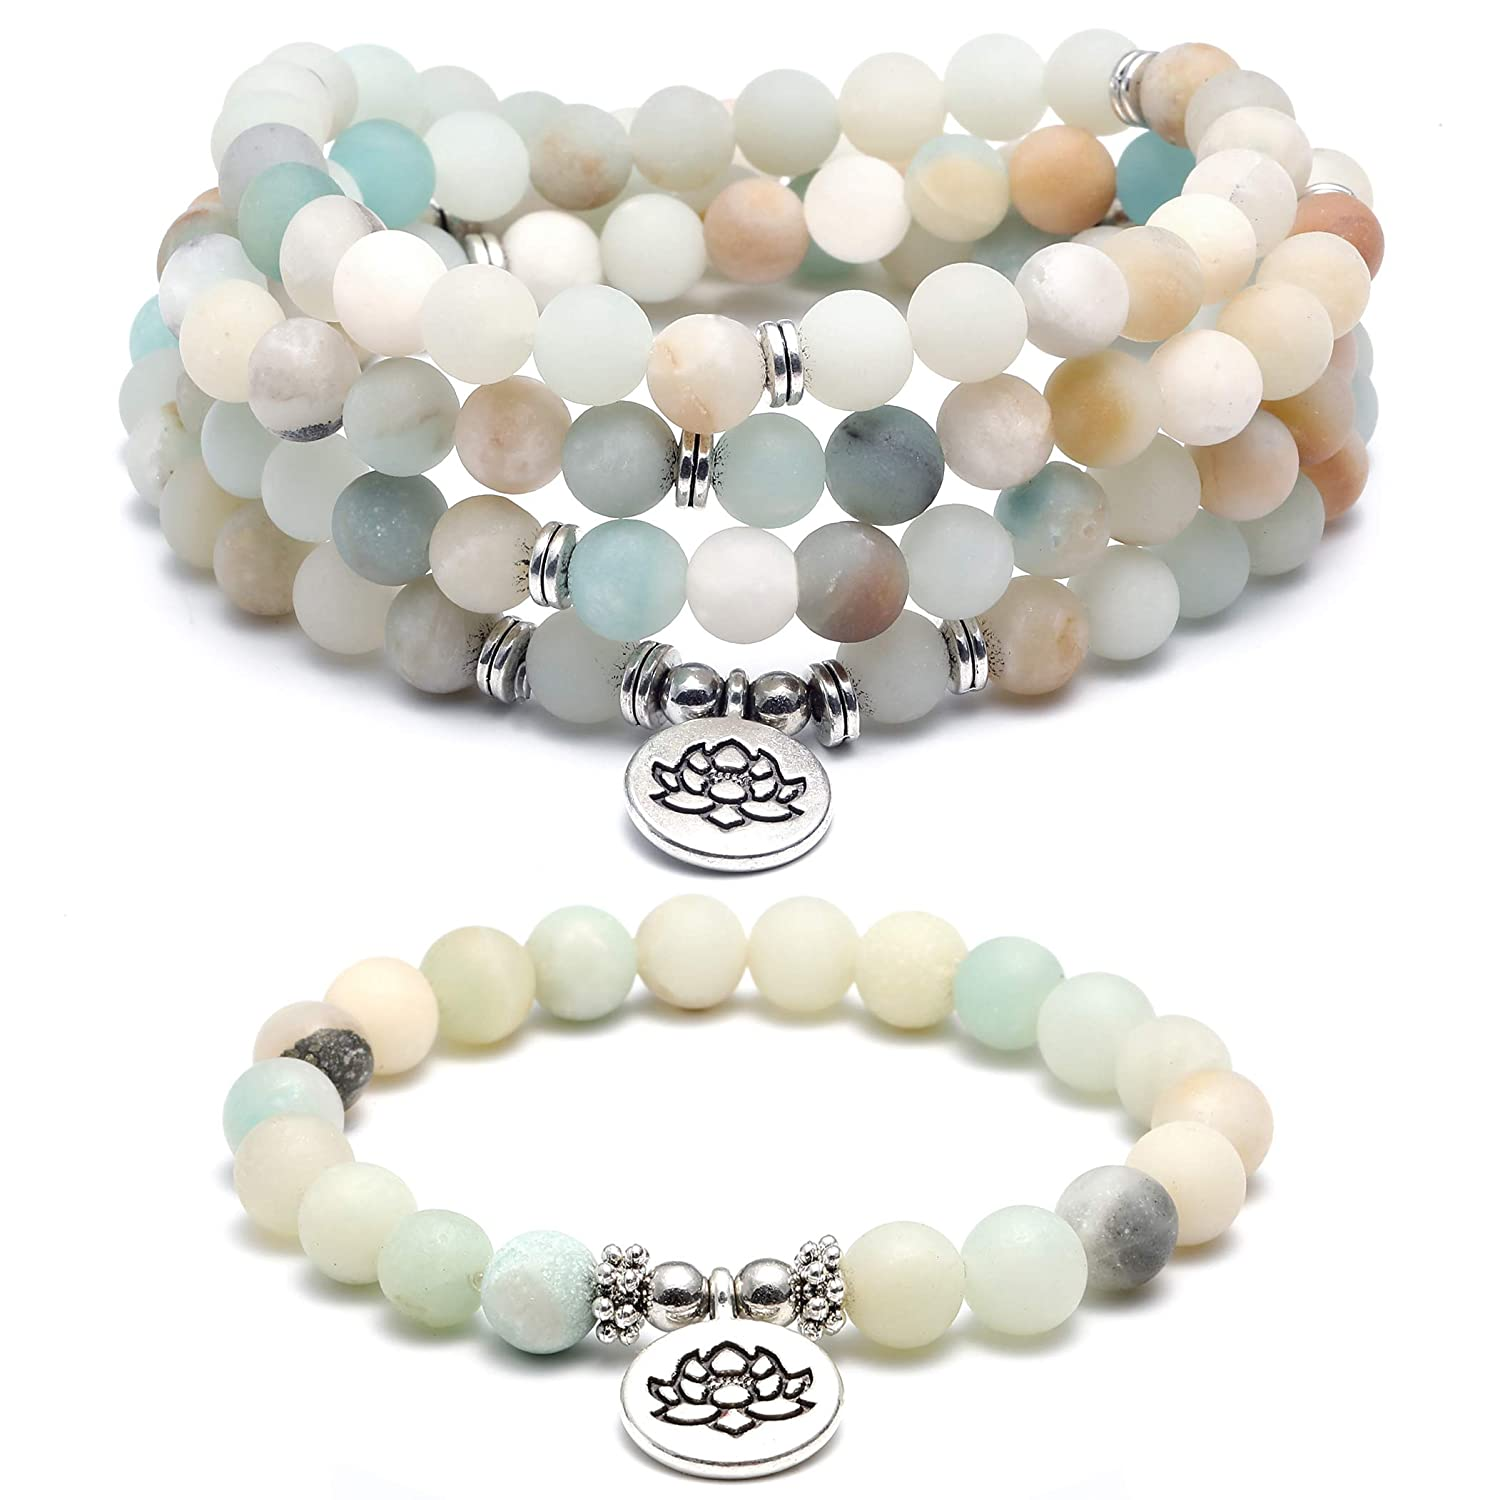 SOOWOOT 8mm Natural Amazonite Beads Healing Gemstone 108 Mala Beads Wrap Bracelet Necklace for Yoga Charm Bracelet Jewelry for Women Men